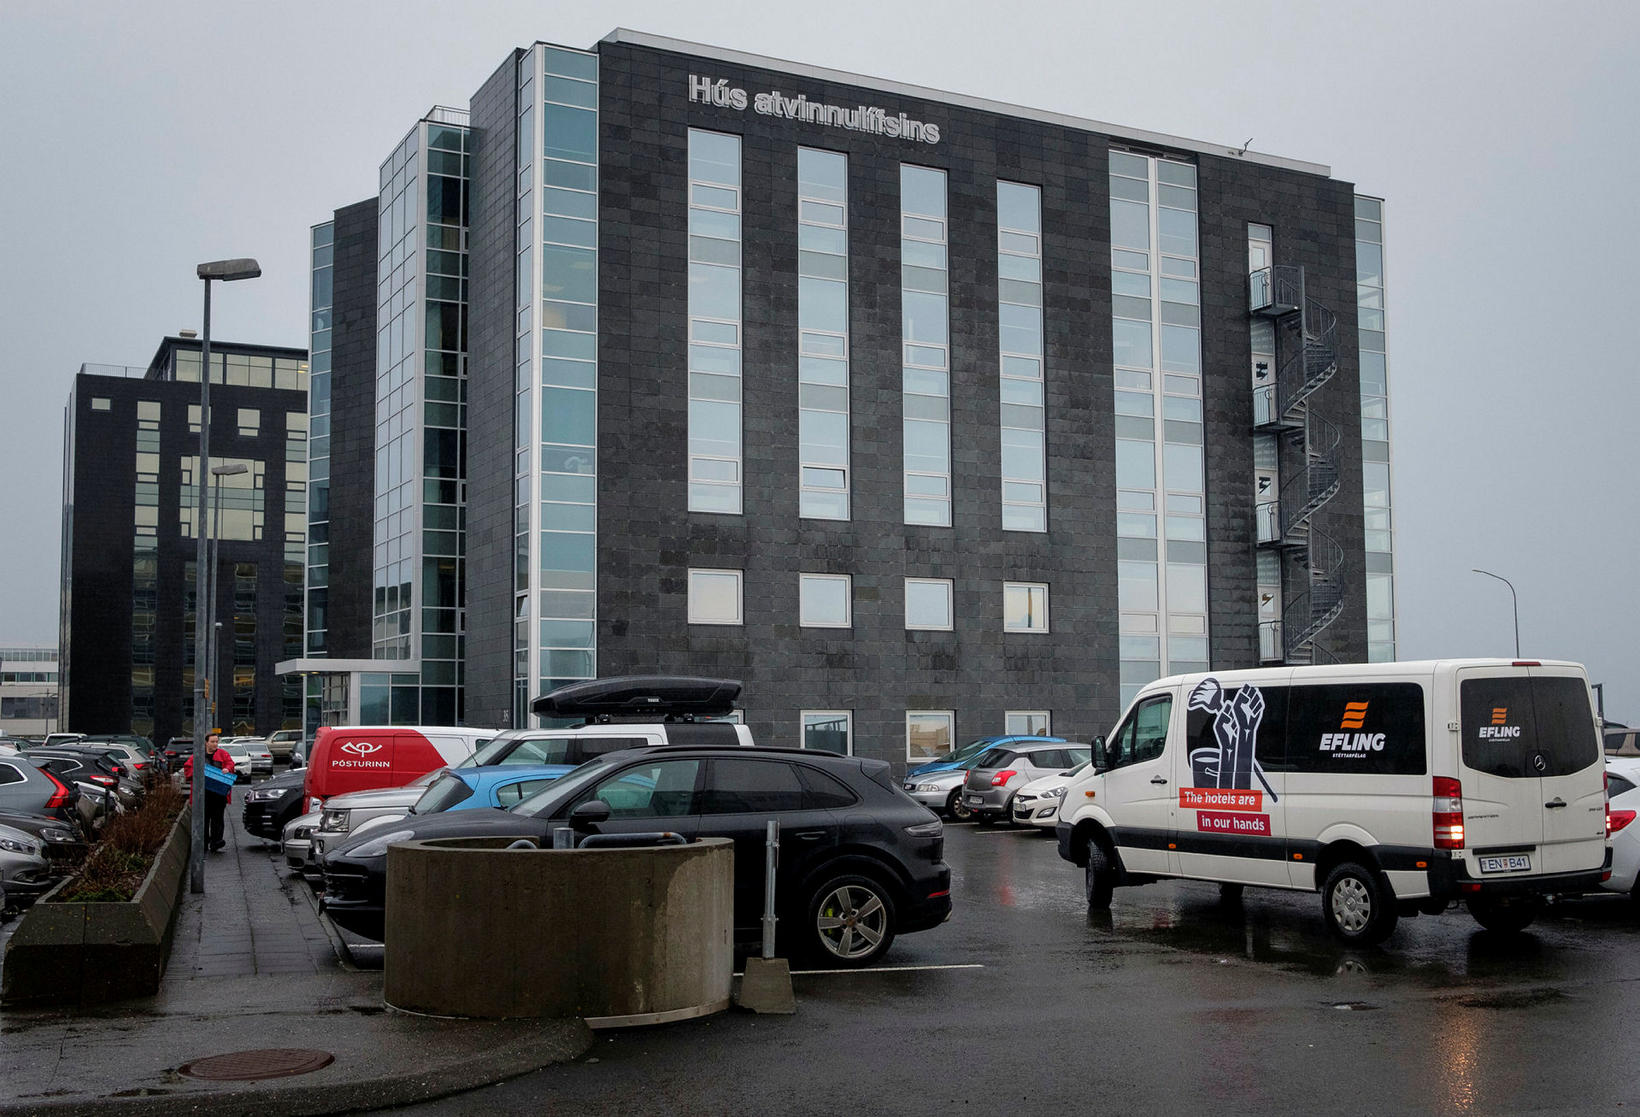 The Icelandic Industry Building.